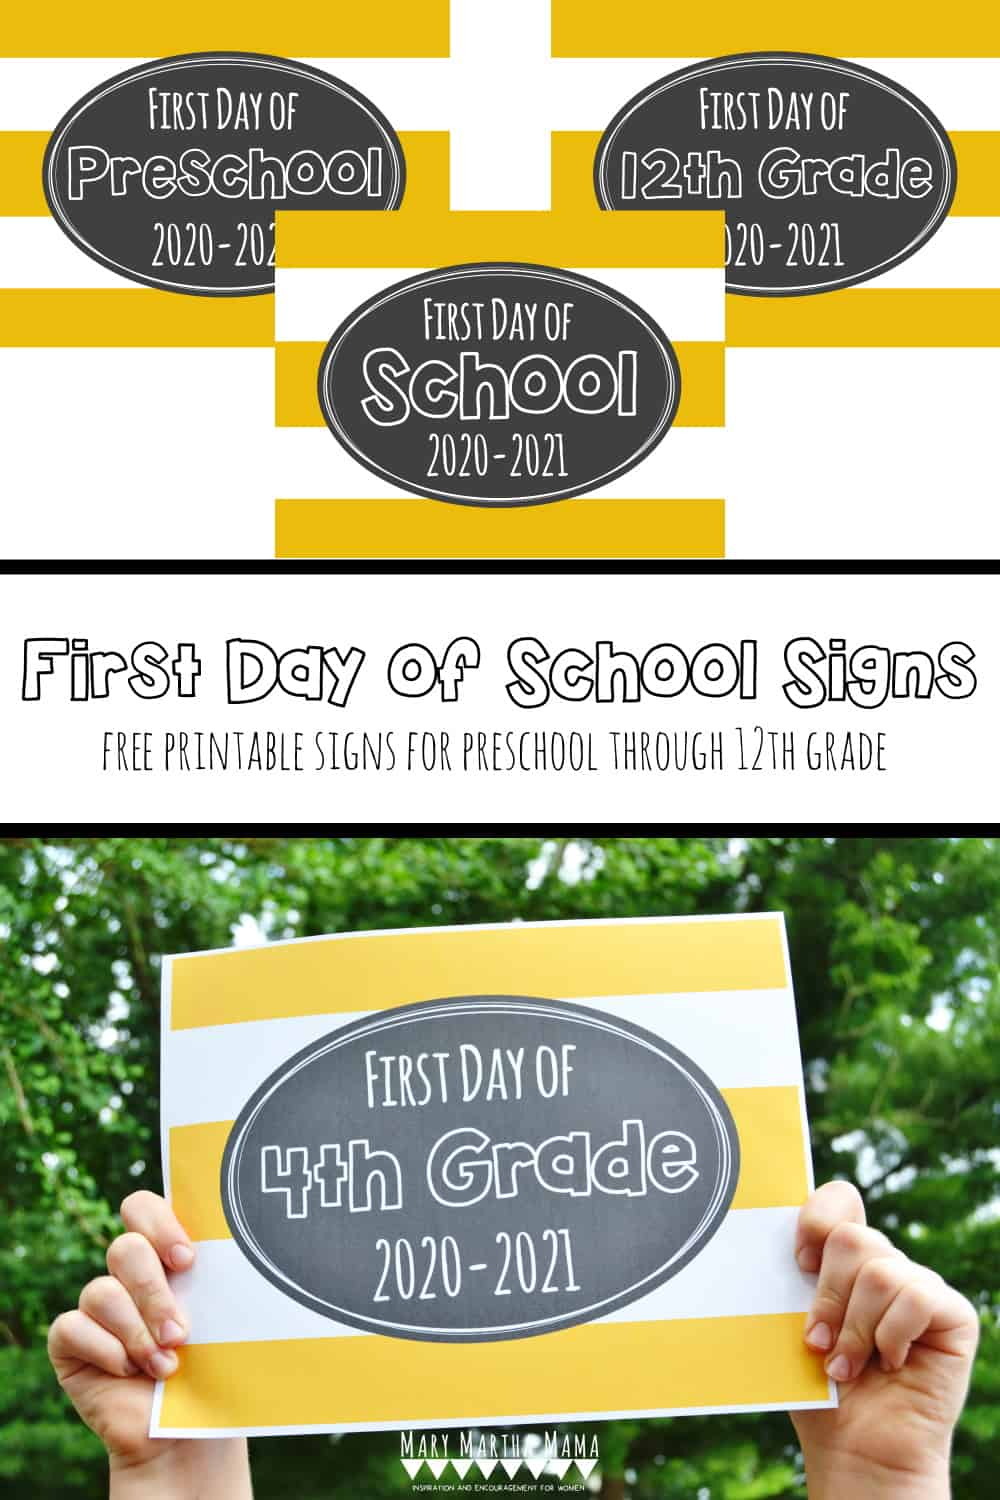 Grab one of these Free Printable First Day of School Signs 2020 and snap a picture with your kid to celebrate. Free Printables for Preschool to 12th Grade.